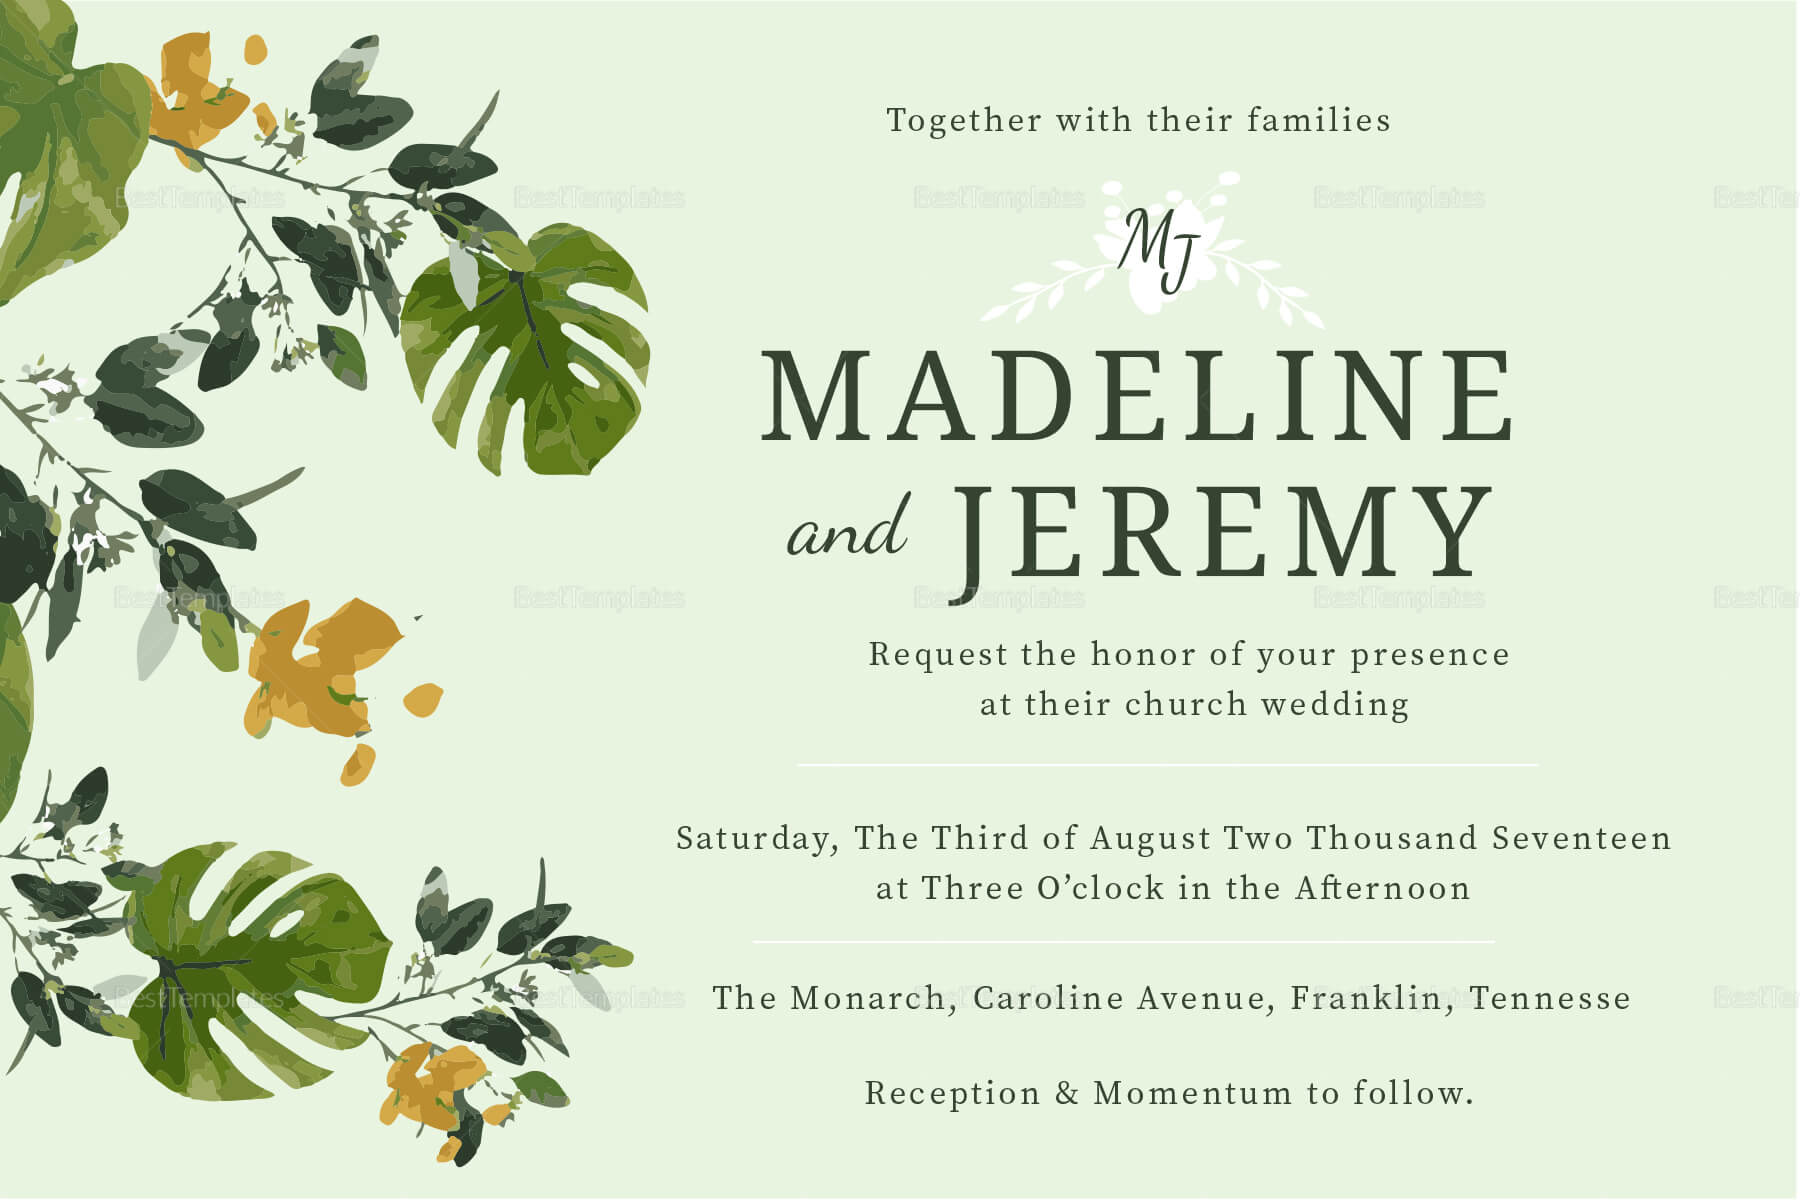 Church Wedding Invitation In Landscape And Portrait With Church Wedding Invitation Card Template